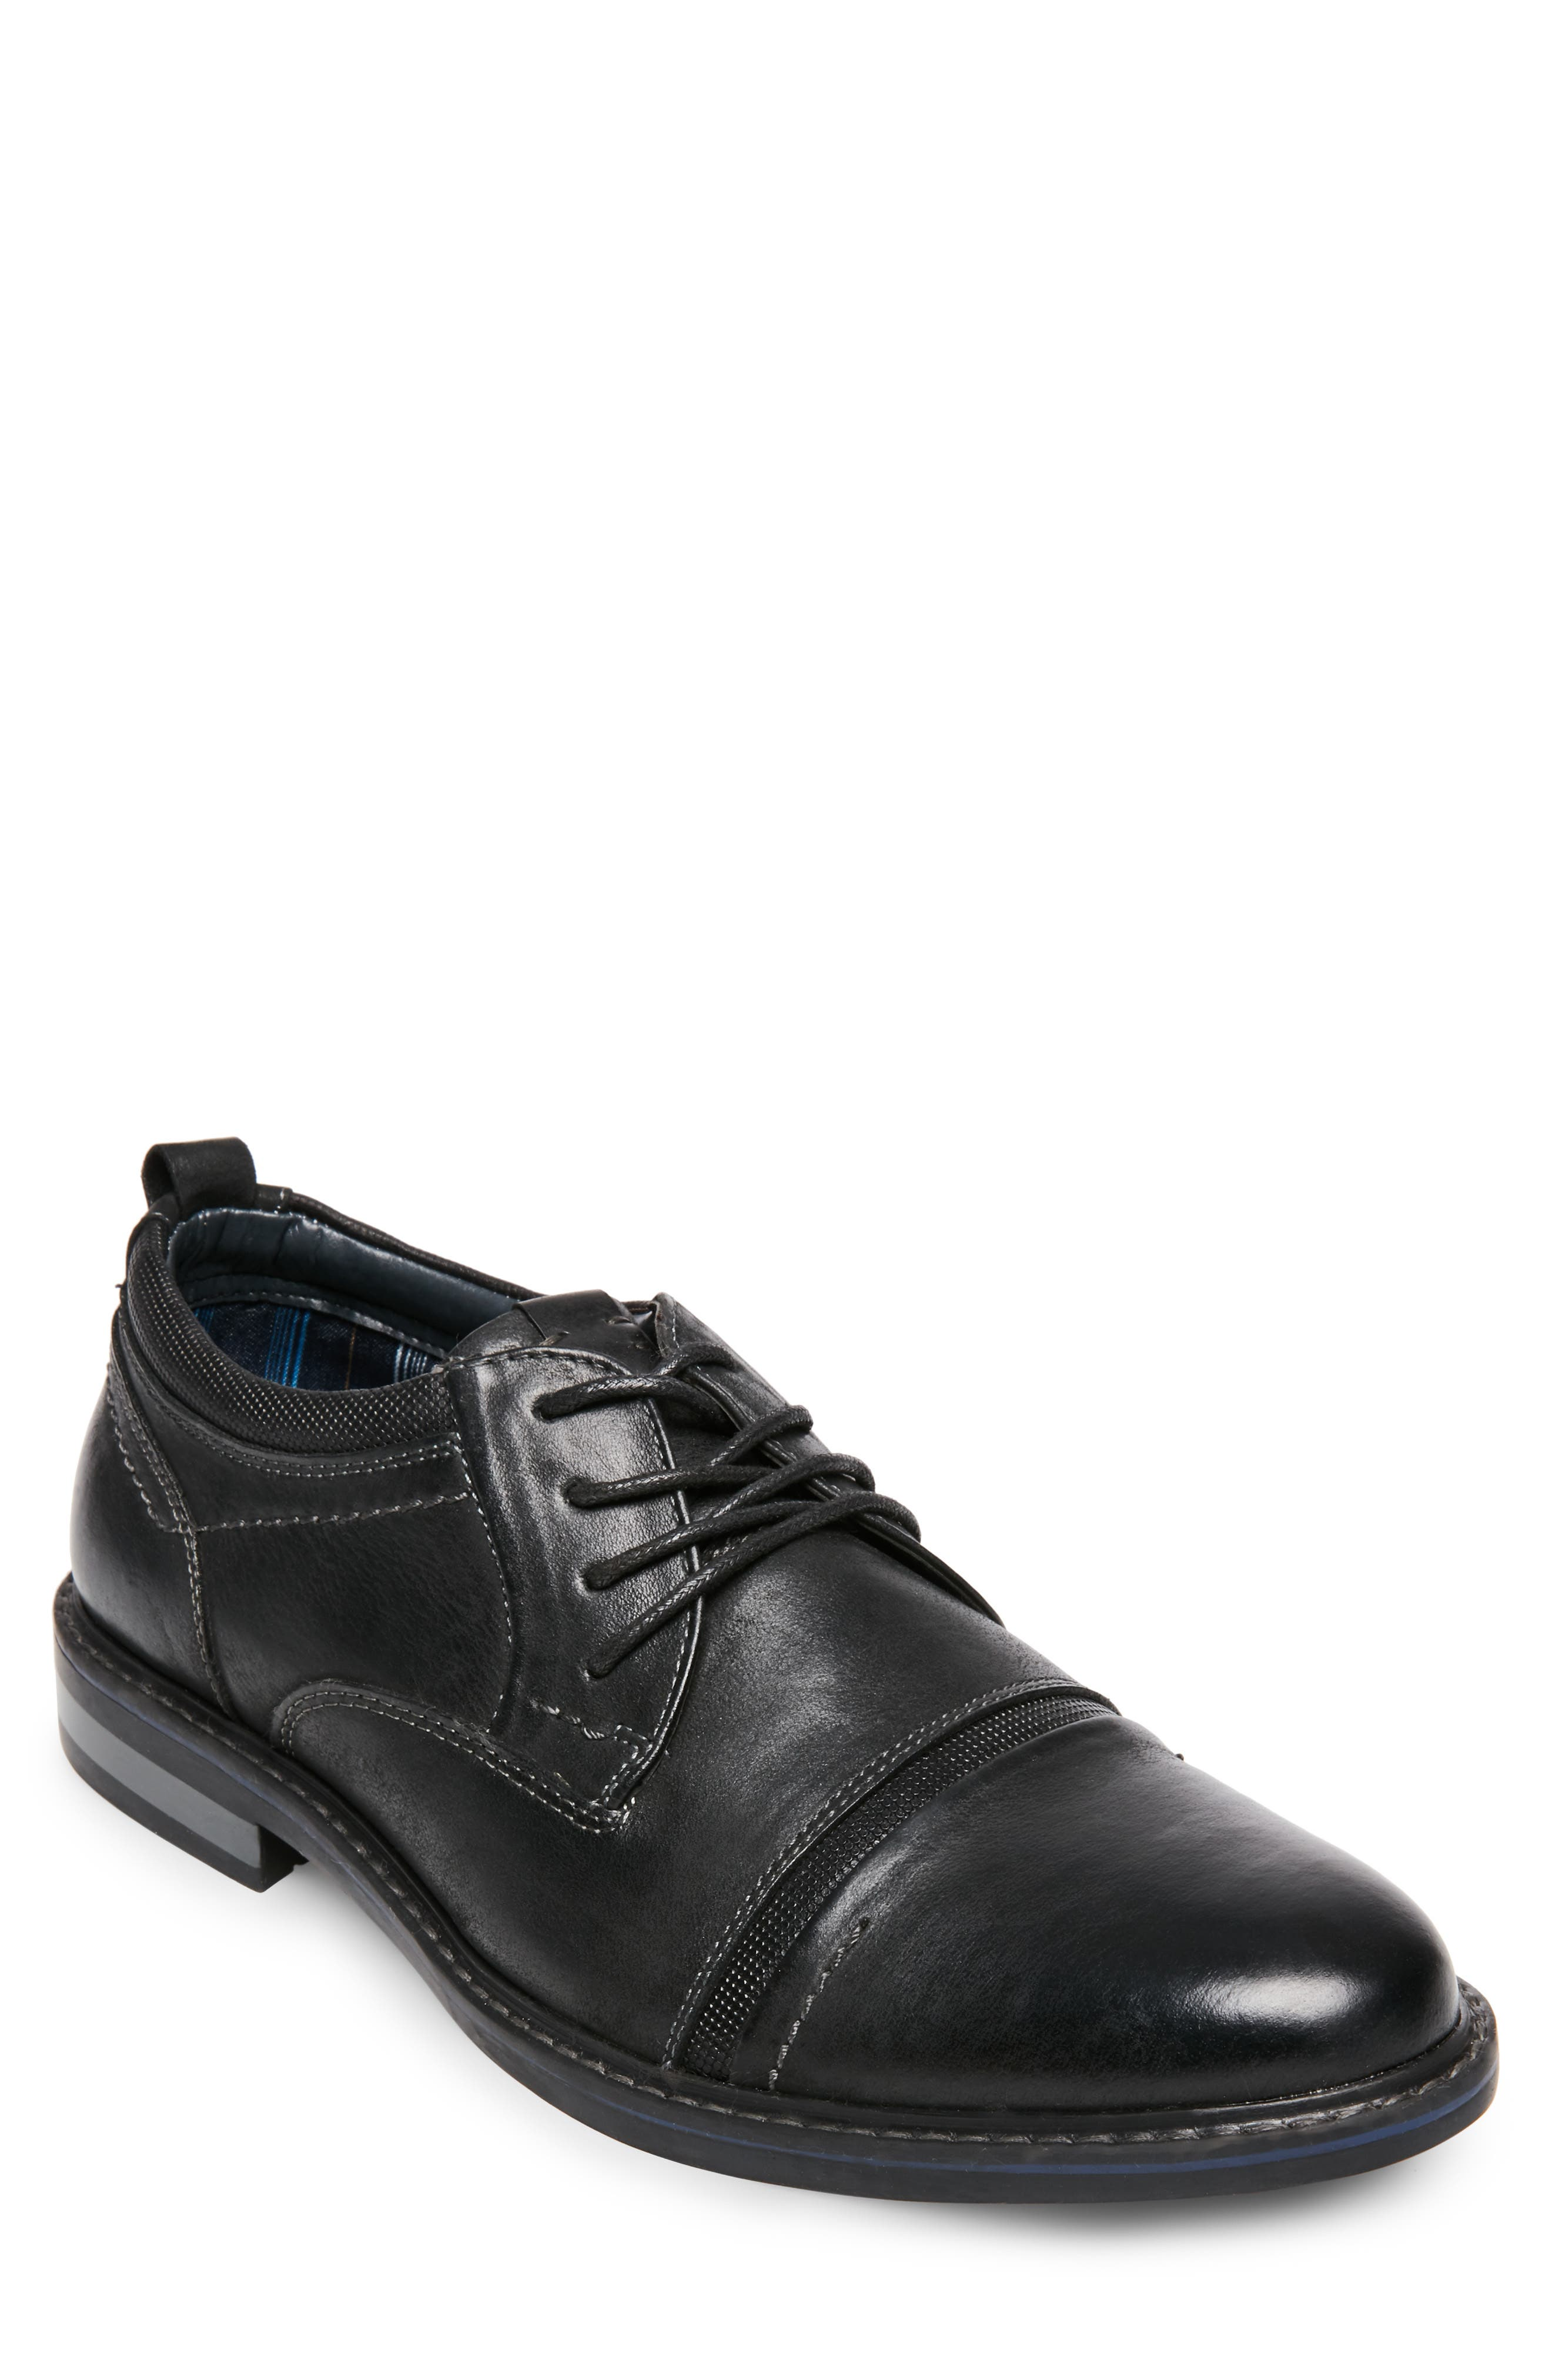 O'Leary Cap Toe Derby,                             Main thumbnail 1, color,                             BLACK LEATHER